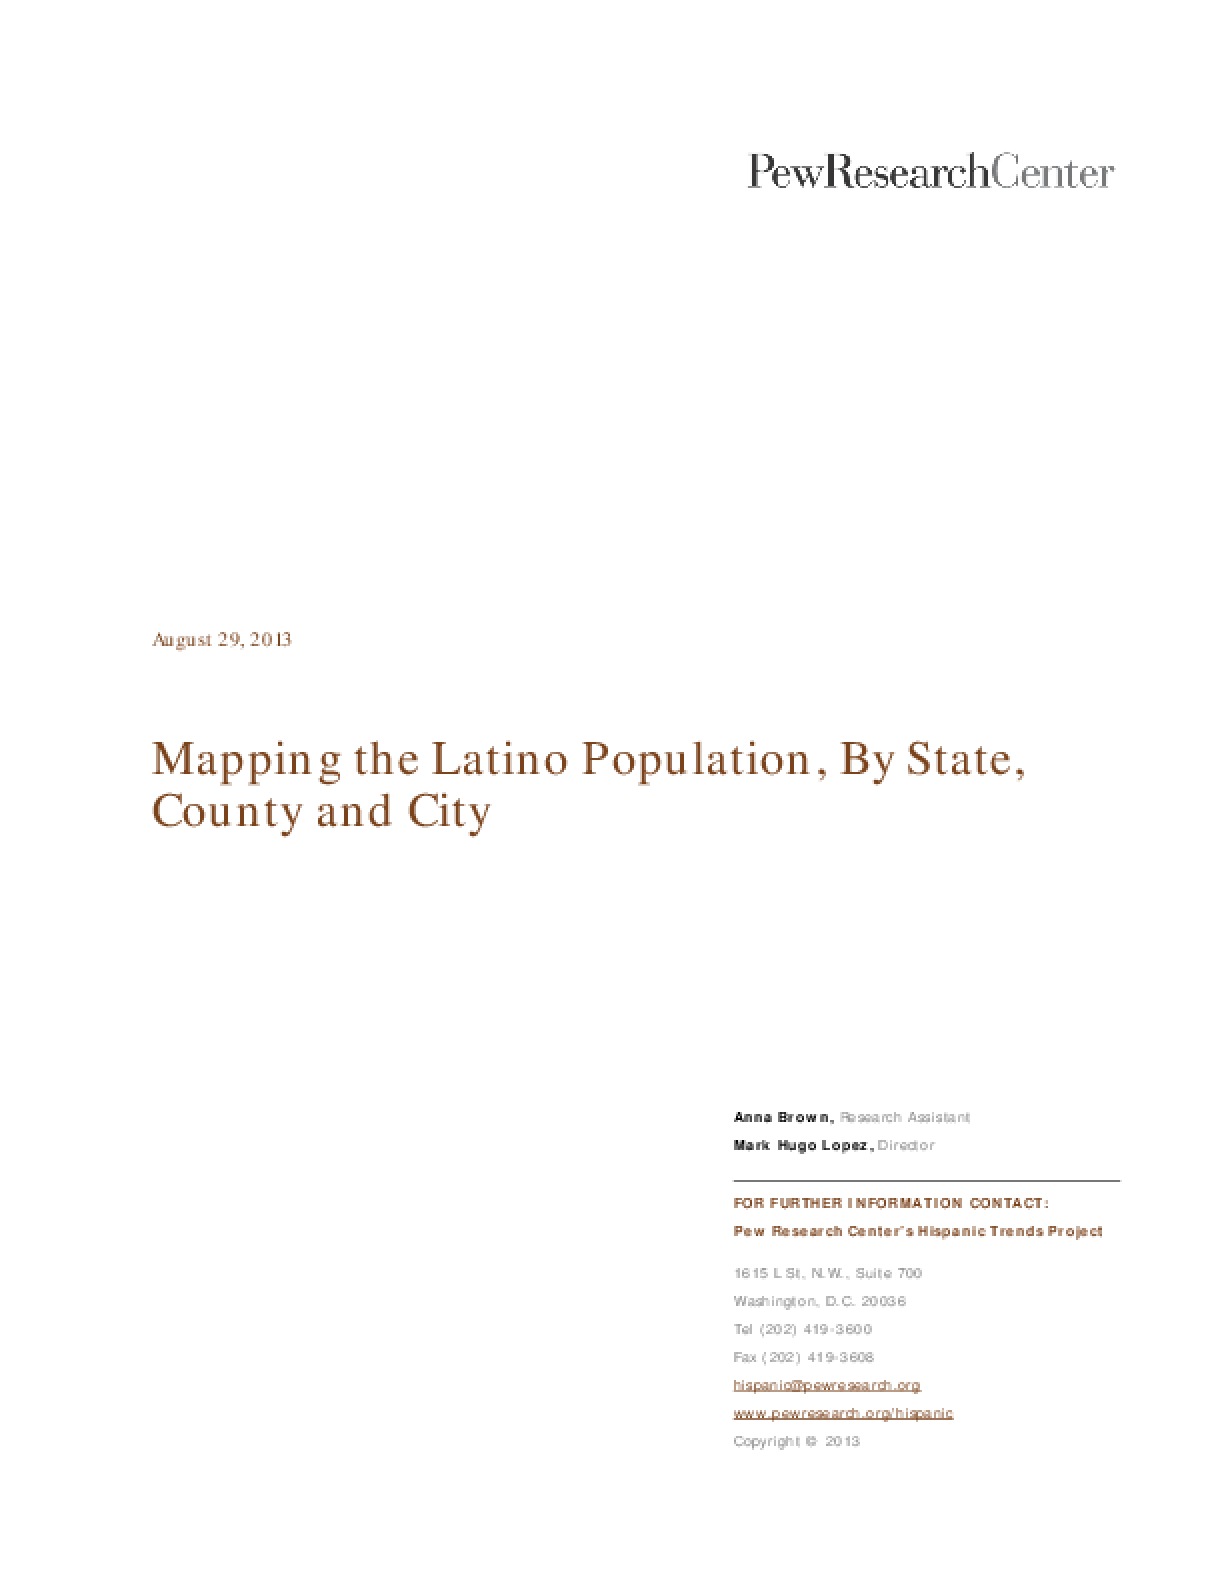 Mapping the Latino Population, By State, County and City